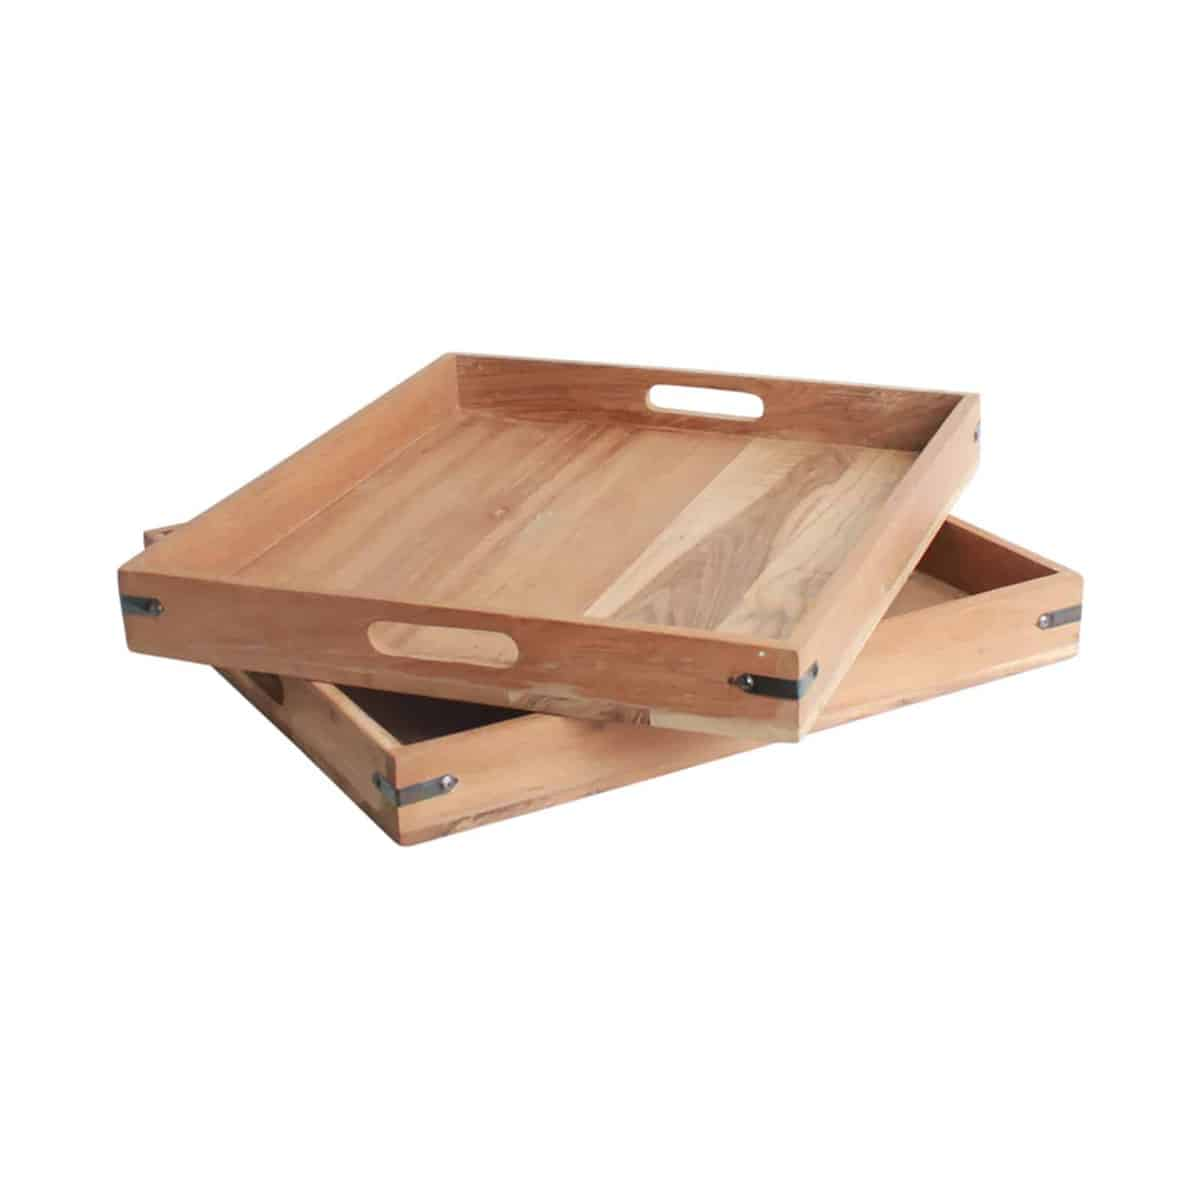 two teakwood trays on top of one another